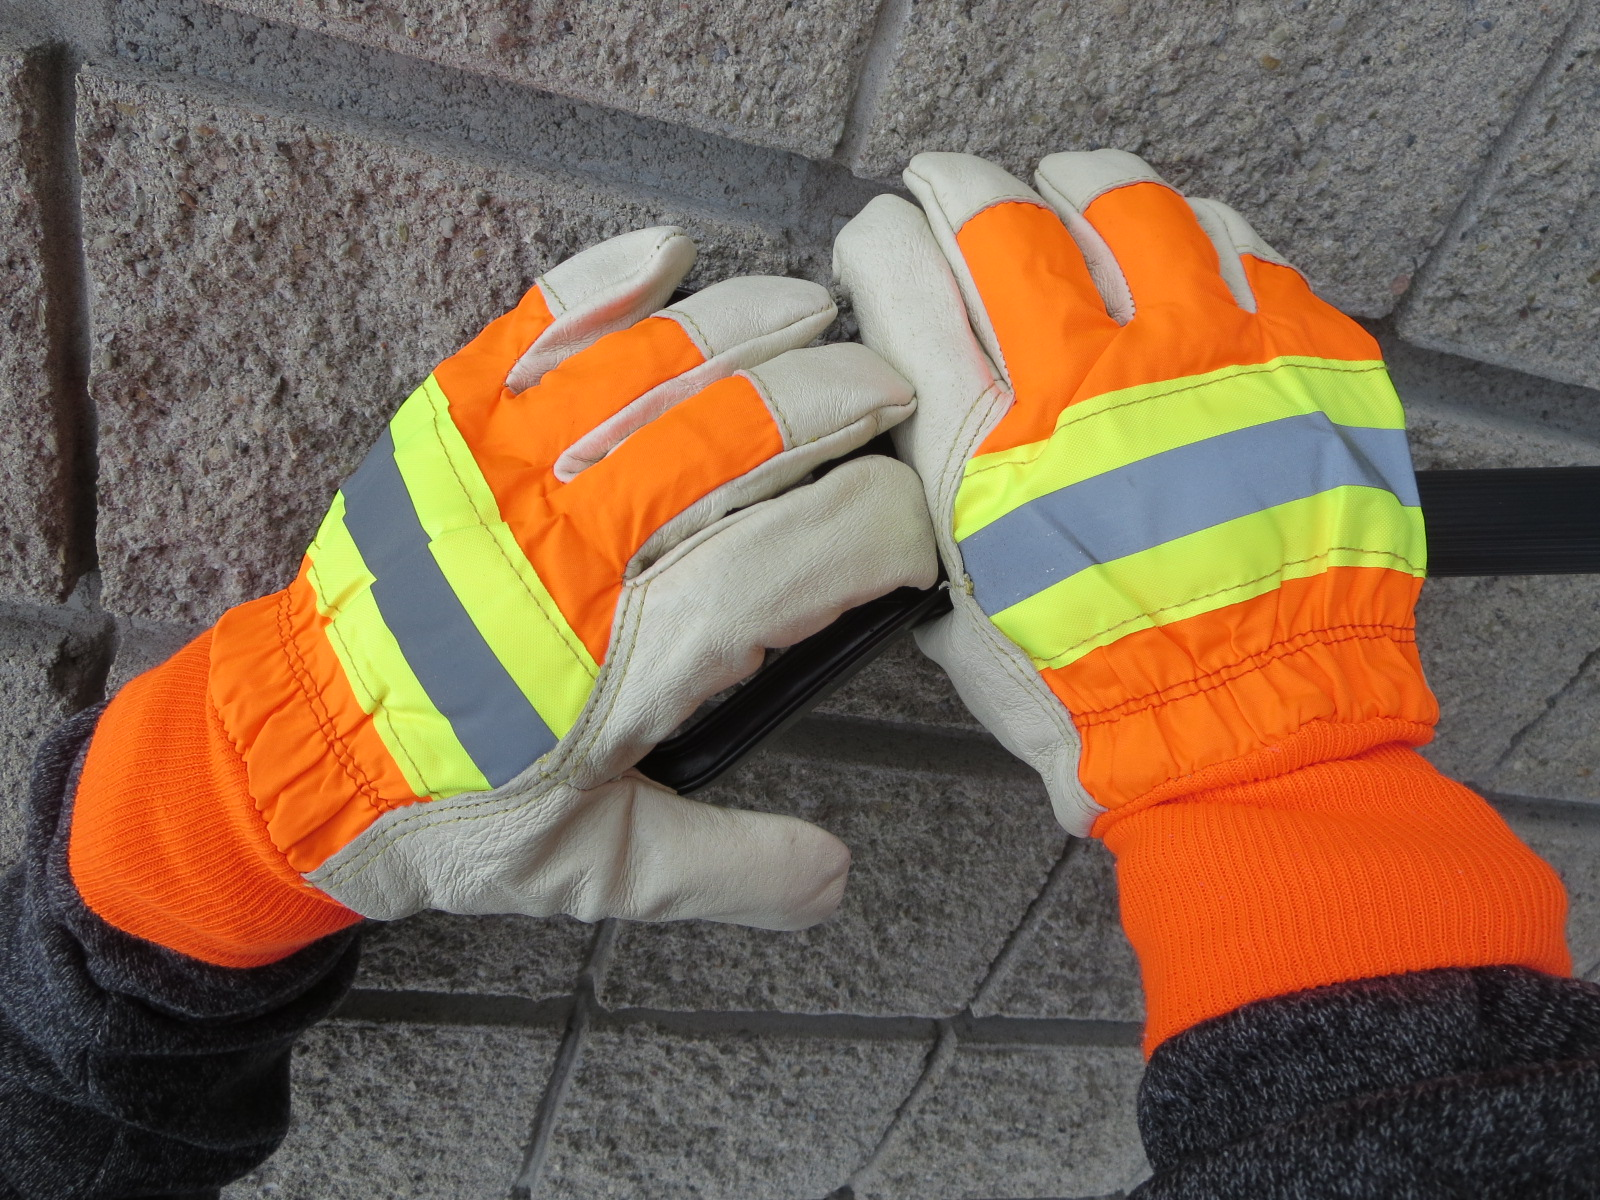 Hi-Viz Leather Reinforced Winter Work Gloves w/ Knit Cuffs